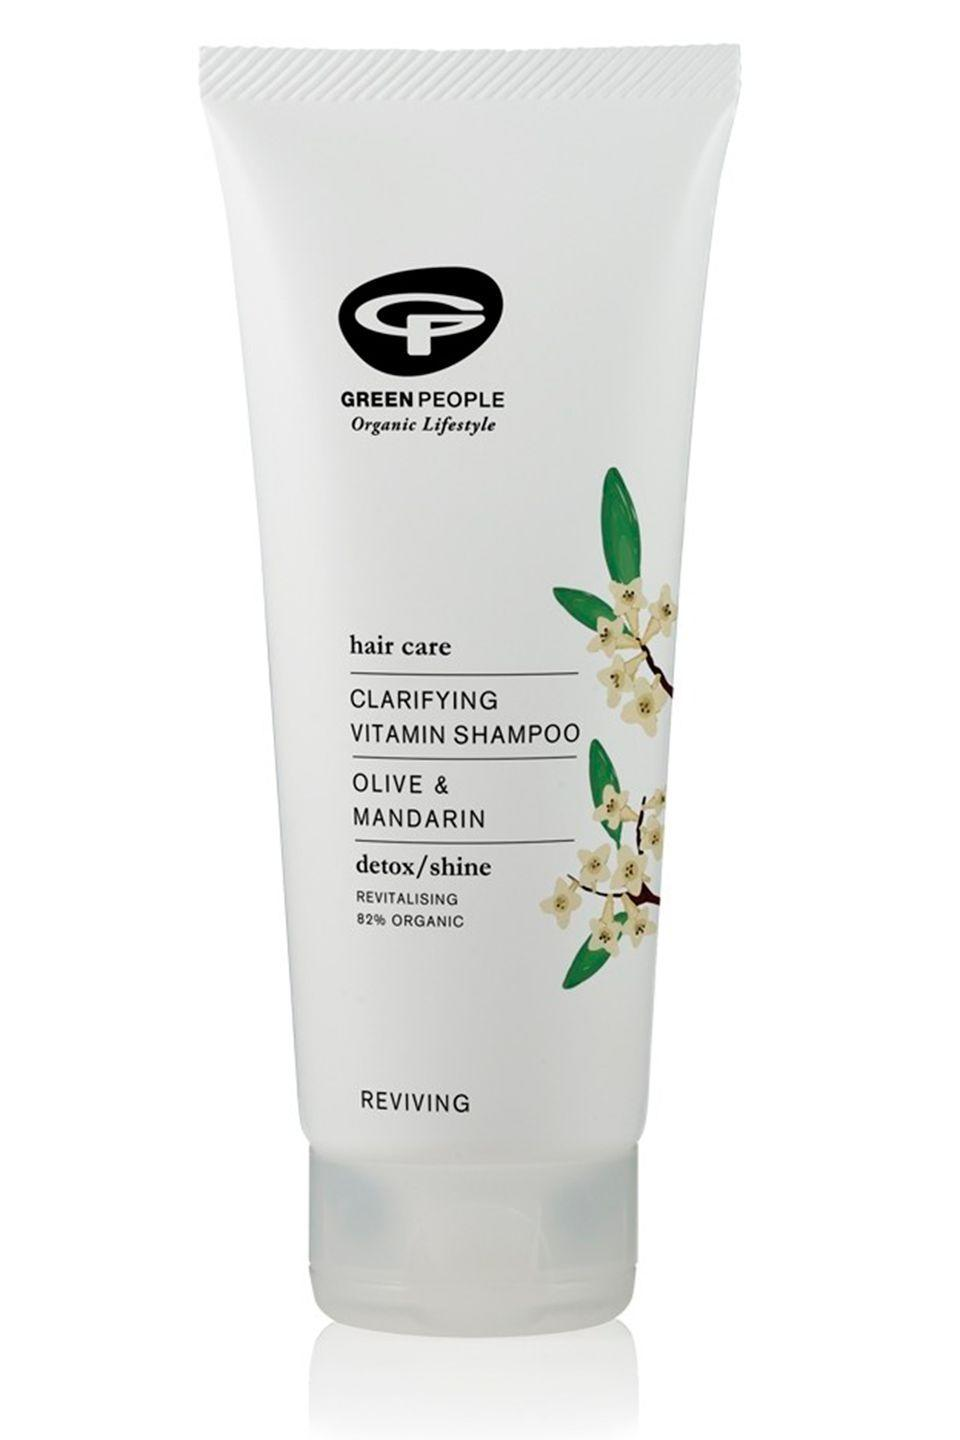 """<p><a class=""""link rapid-noclick-resp"""" href=""""https://go.redirectingat.com?id=127X1599956&url=https%3A%2F%2Fwww.greenpeople.co.uk%2Fclarifying-vitamin-shampoo-200ml&sref=http%3A%2F%2Fwww.cosmopolitan.com%2Fuk%2Fbeauty-hair%2Fhair%2Fg13914882%2Fclarifying-shampoo%2F"""" rel=""""nofollow noopener"""" target=""""_blank"""" data-ylk=""""slk:BUY NOW"""">BUY NOW</a> £13</p><p>If you want a clarifying shampoo without all the 'nasties' (yes, I hate that word too), look to Green People. </p><p>The all-natural beauty brand formulated this clarifying shampoo to remove product build up from the hair and leave it clean and refreshed. The best bit? It's 'made without SLS/SLES, alcohol (ethyl alcohol, ethanol), parabens, phthalates and artificial fragrances'.<br></p>"""